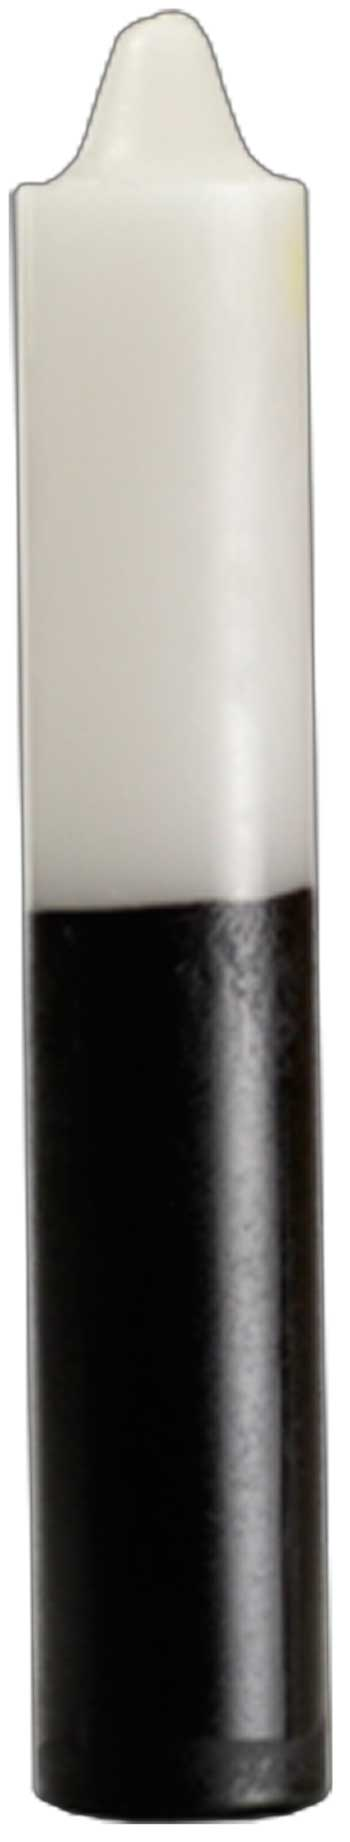 "9"" White- Black Pillar Candle"